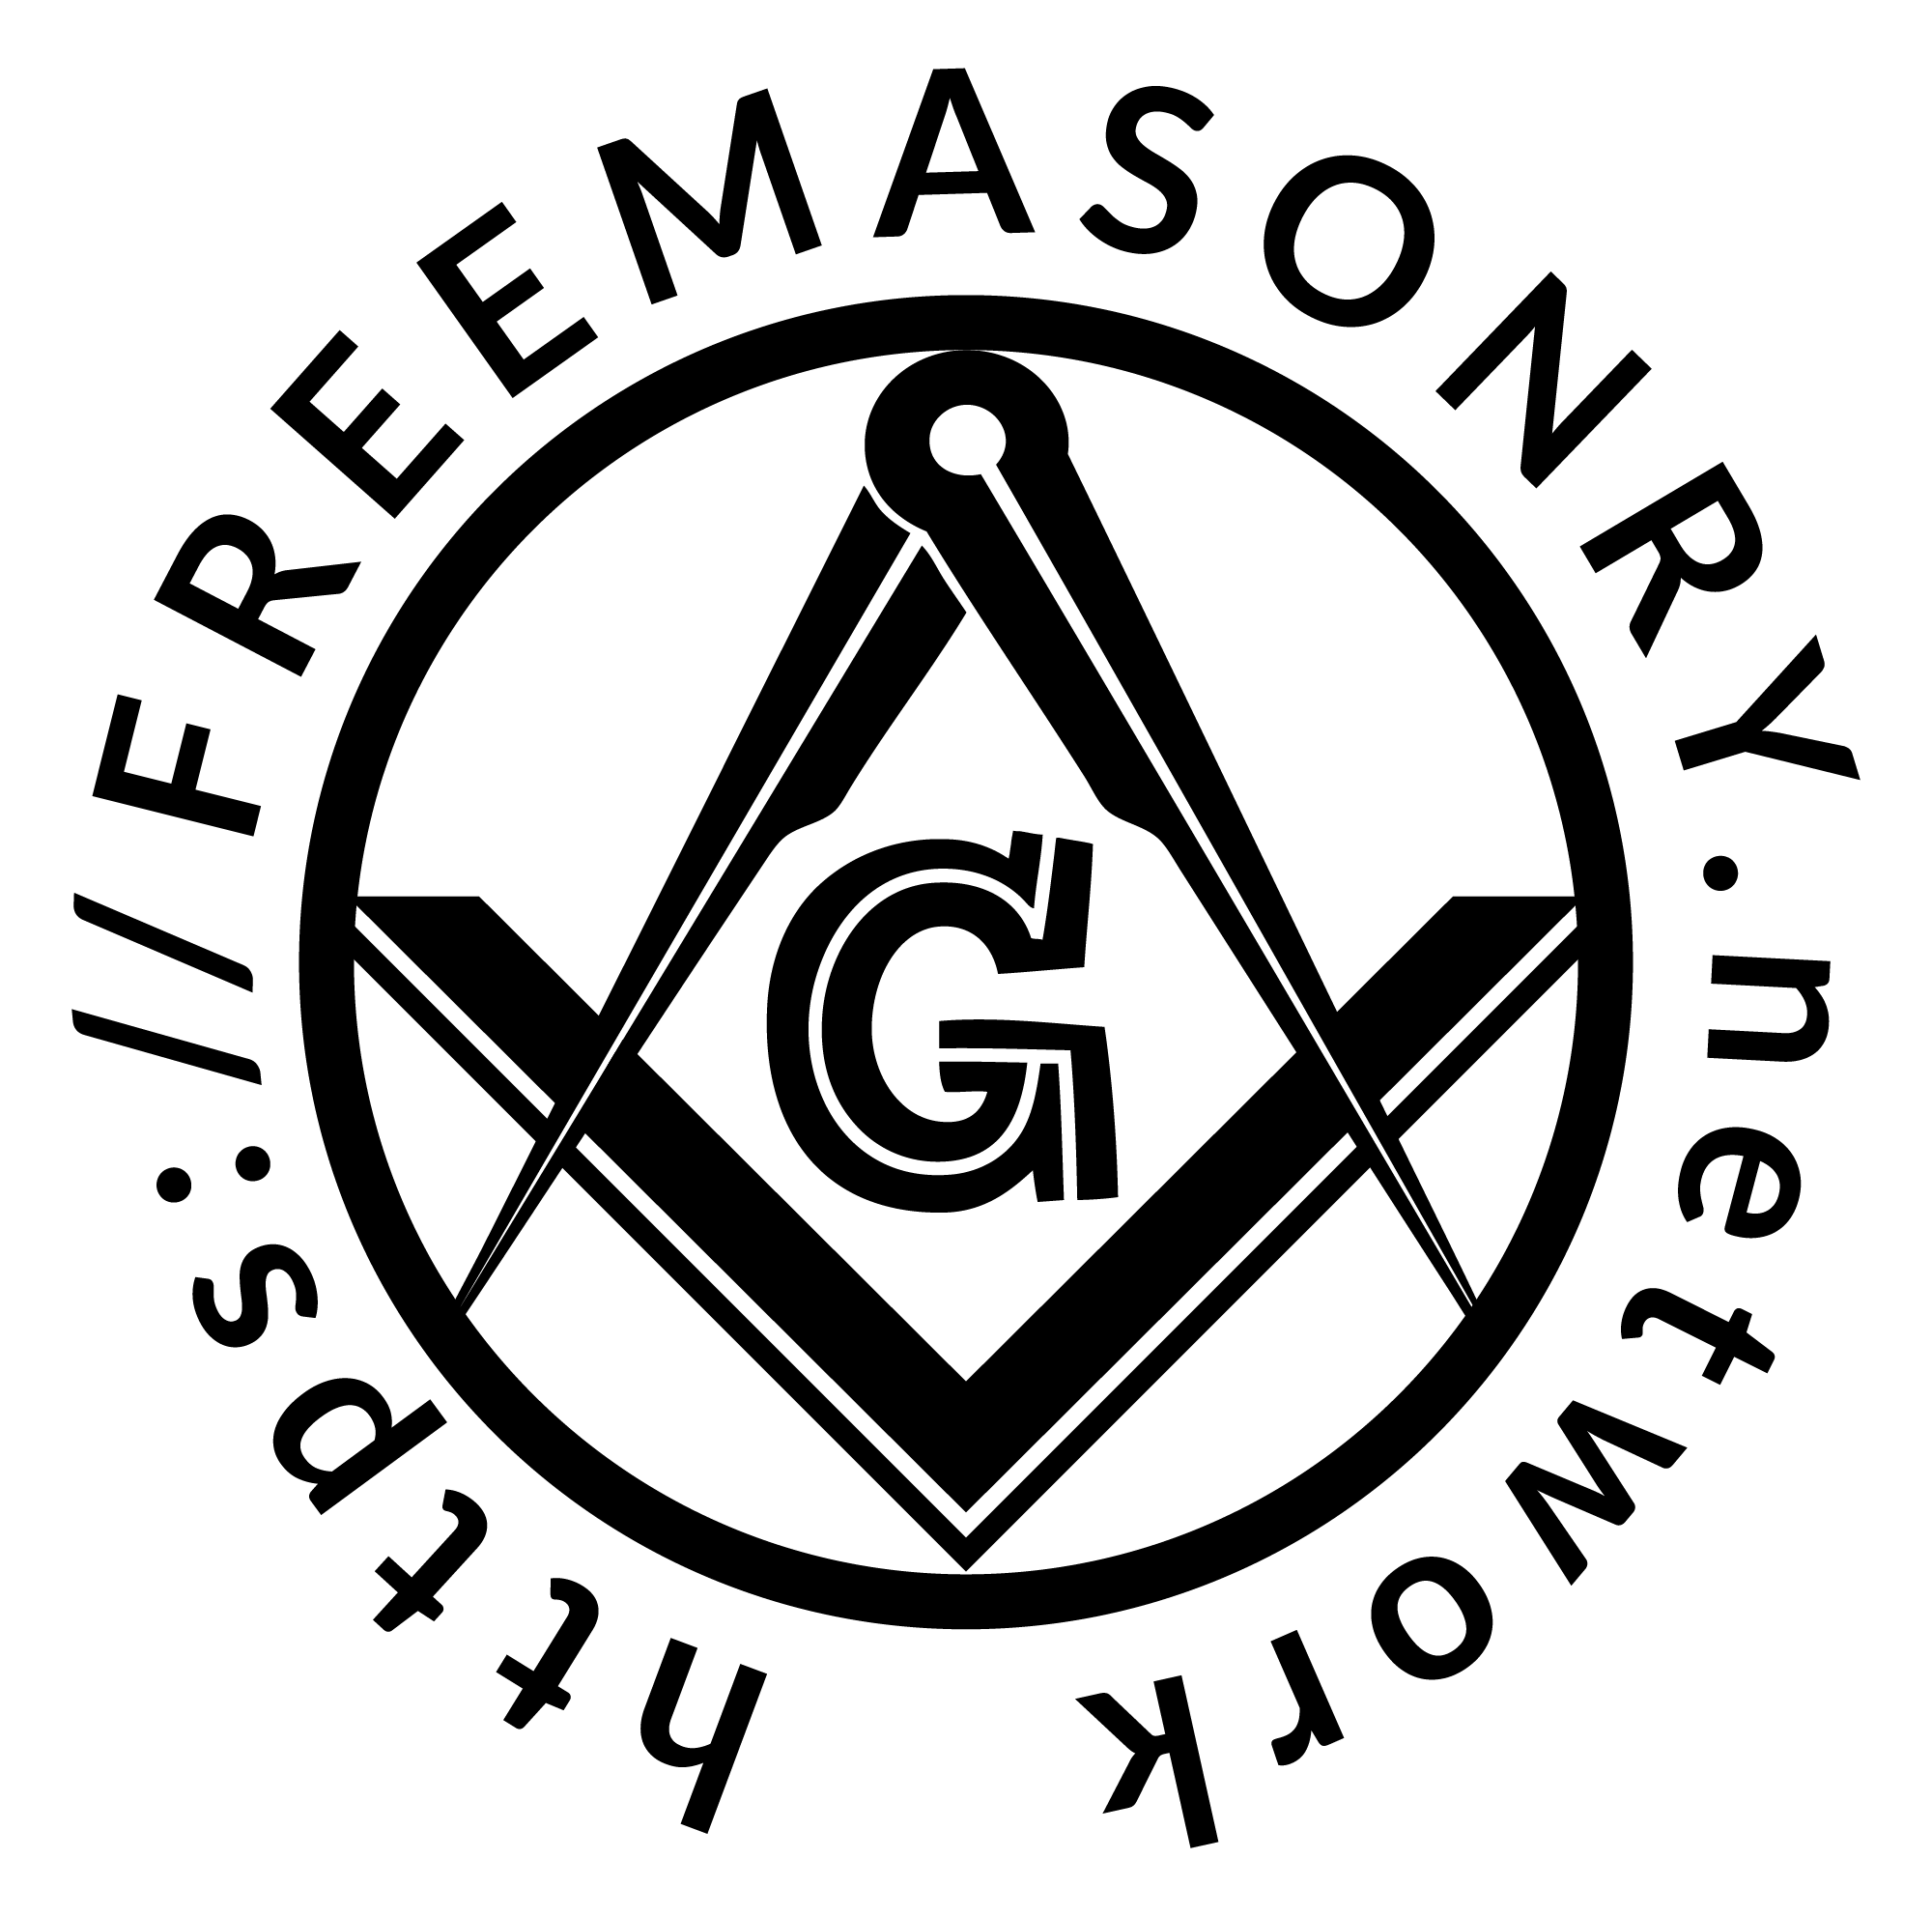 BUY MASONIC ART